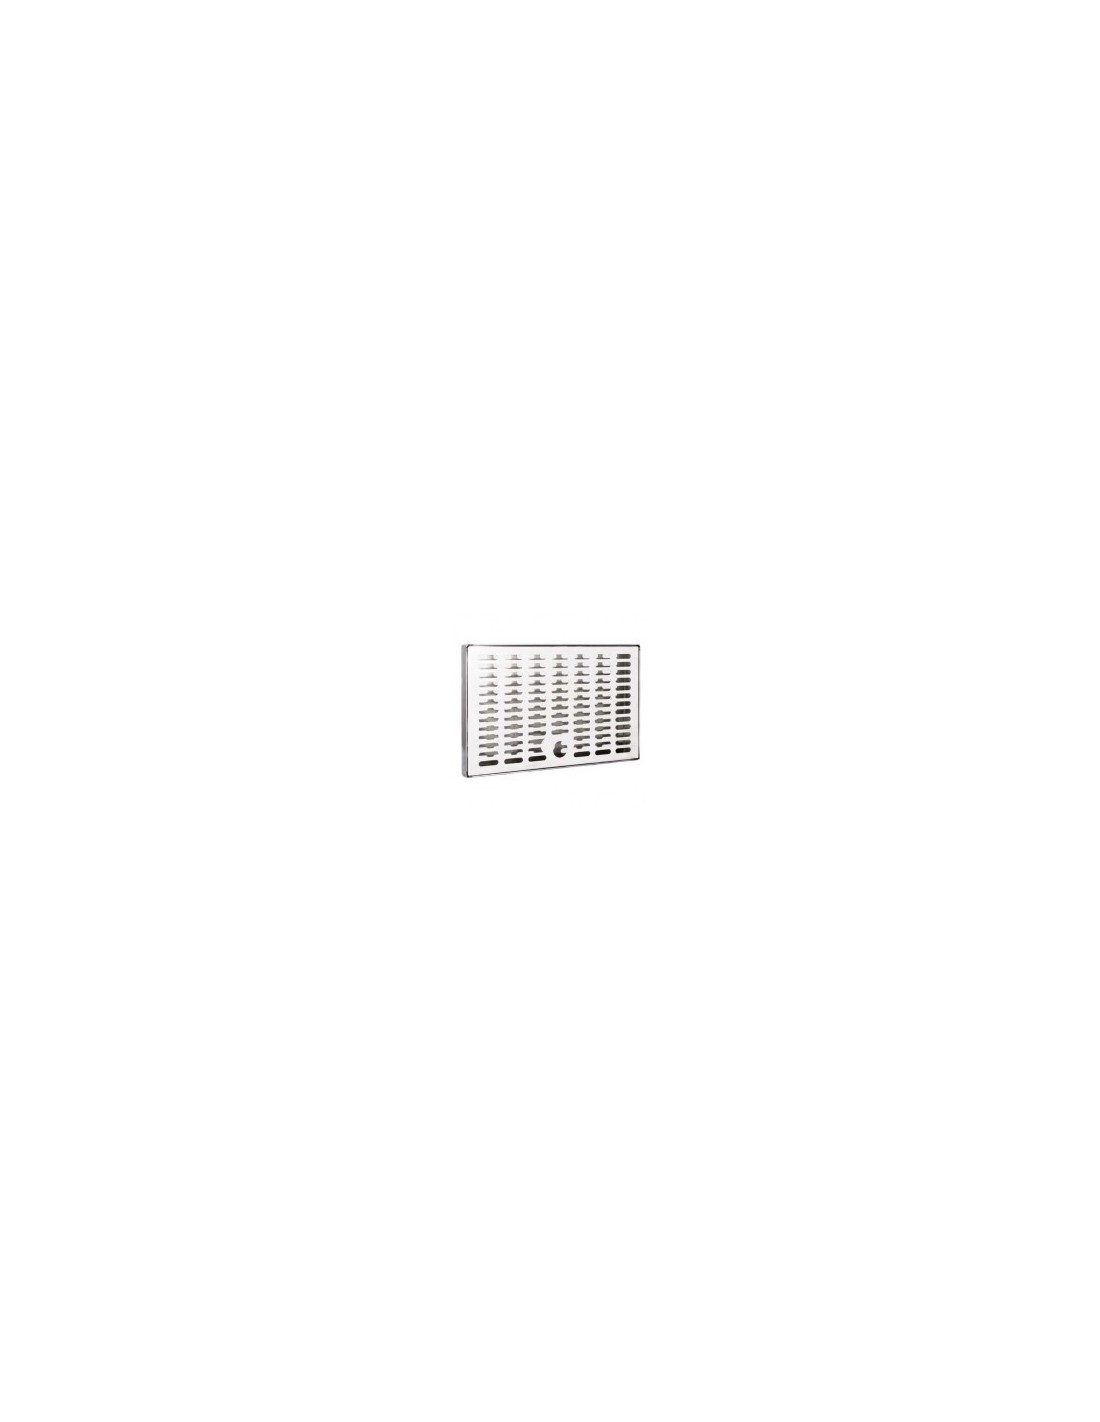 ODM01601 - Drip tray in stainless steel 240x150x20 mm